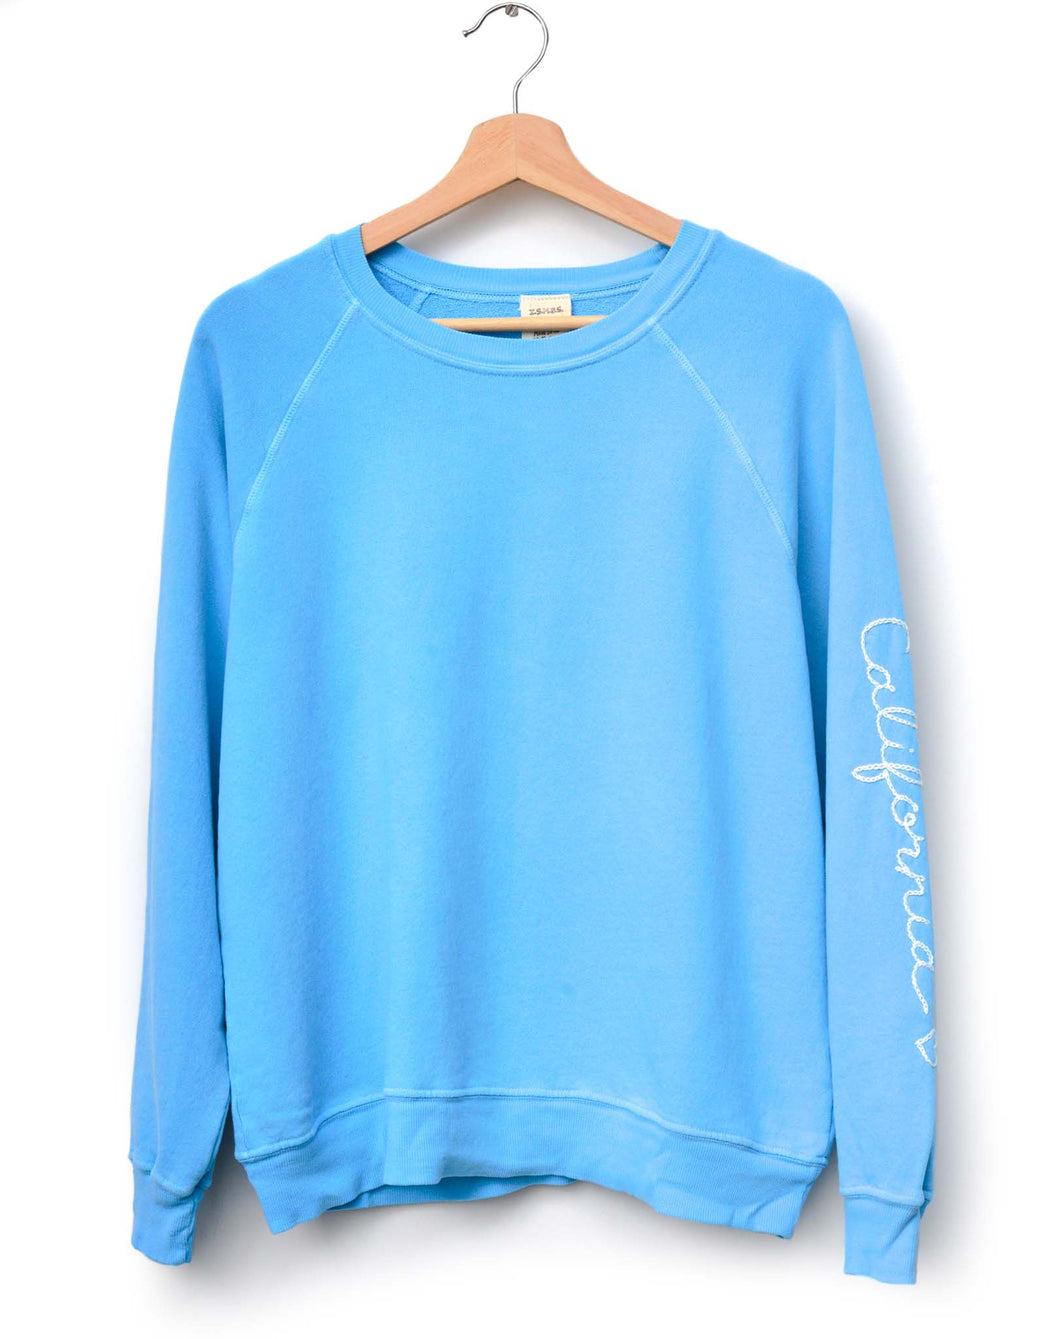 NEON BLUE  L/S SWEATS WITH CUSTOM HAND EMBROIDERY ON SLEEVE